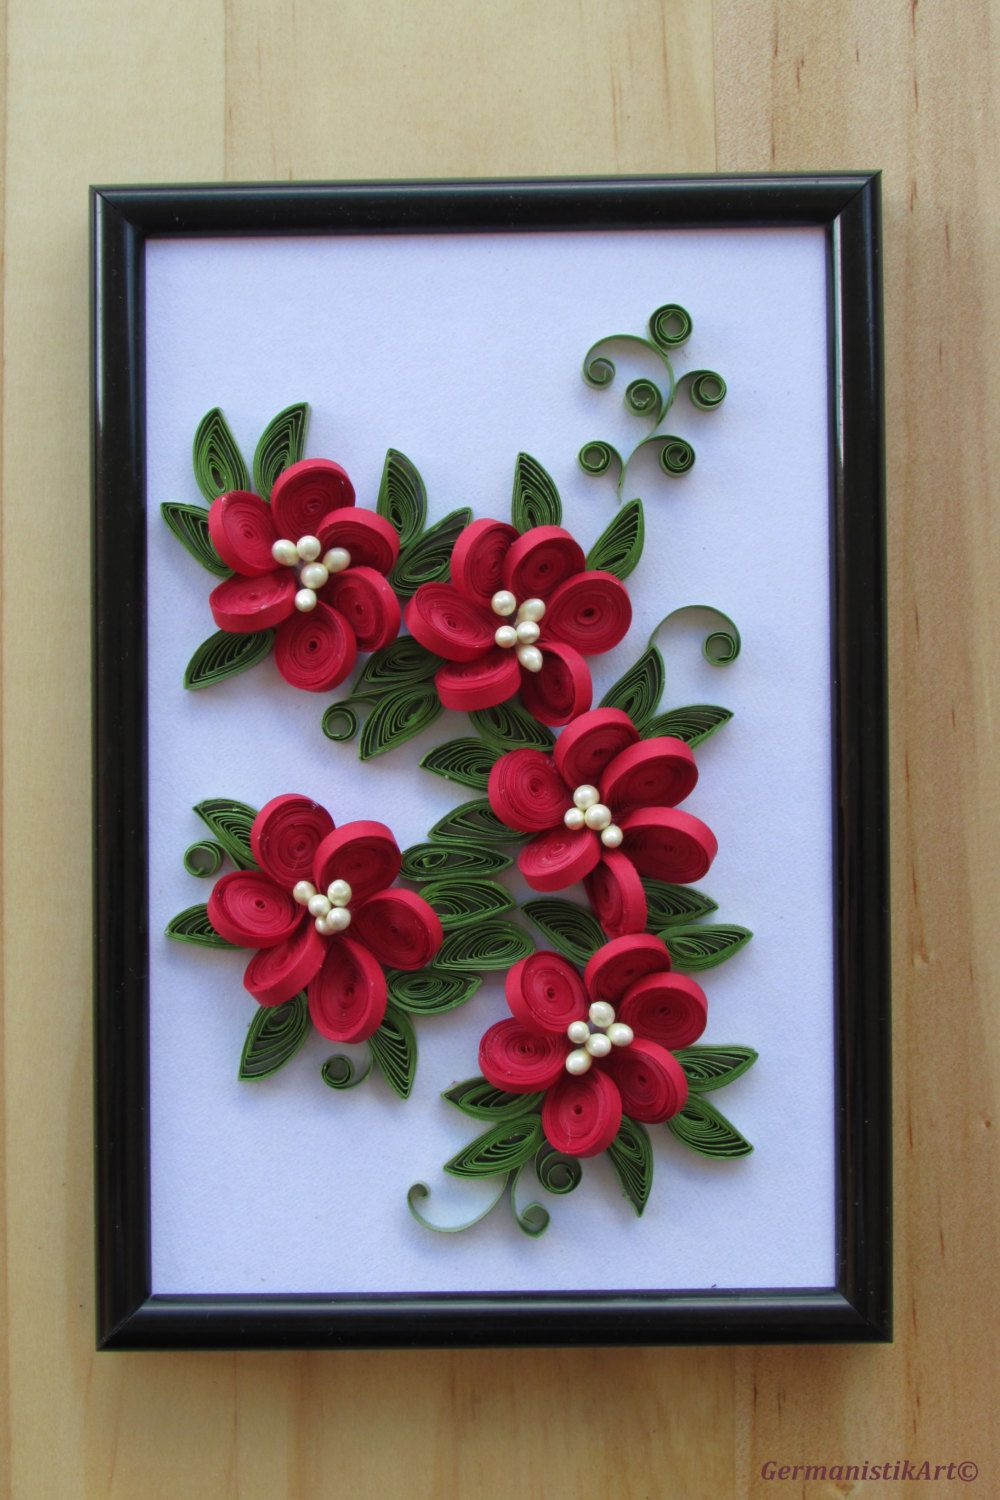 Quillling 3d Flower Wall Art Framed Flower Art Paper Quilling